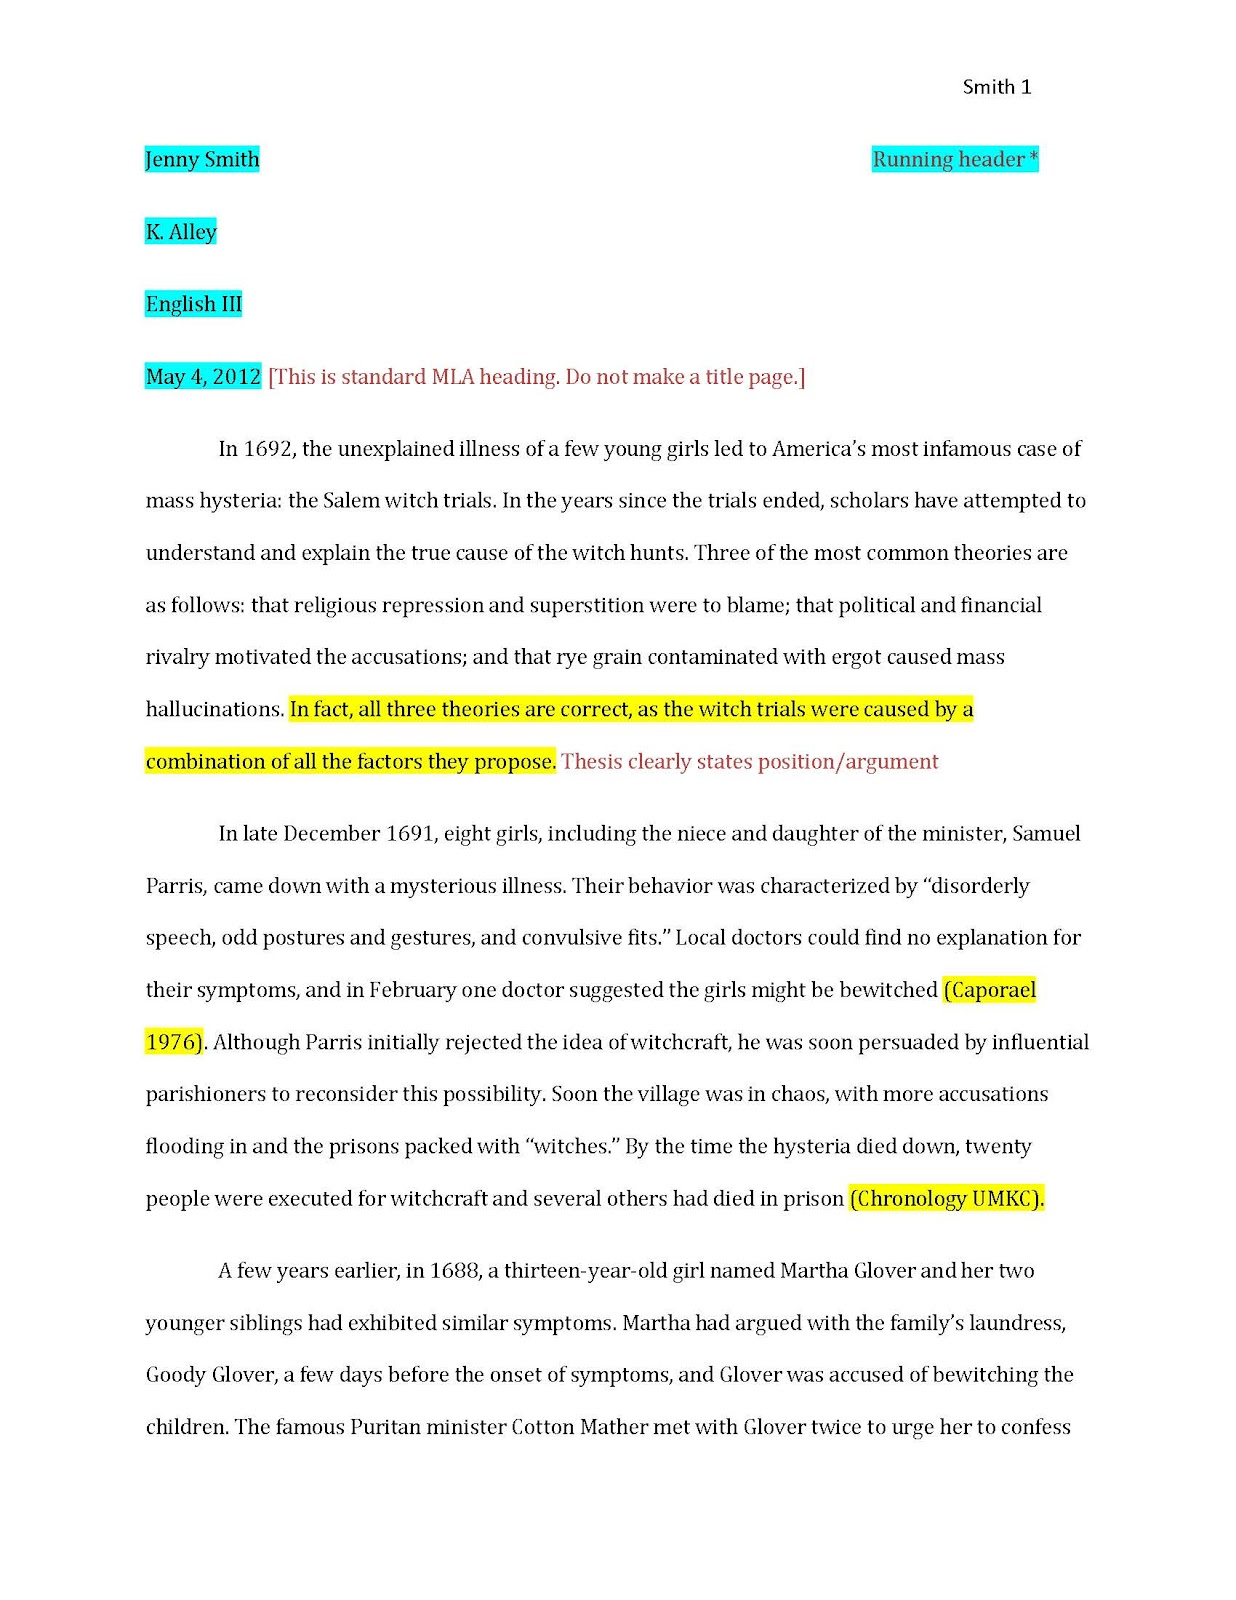 Chicago style example essay cover letter asa format example essay citation in essay citation in essay gxart in essay citation purdue owl in text citation online essay how to format an essay mla apa chicago style spiritdancerdesigns Gallery